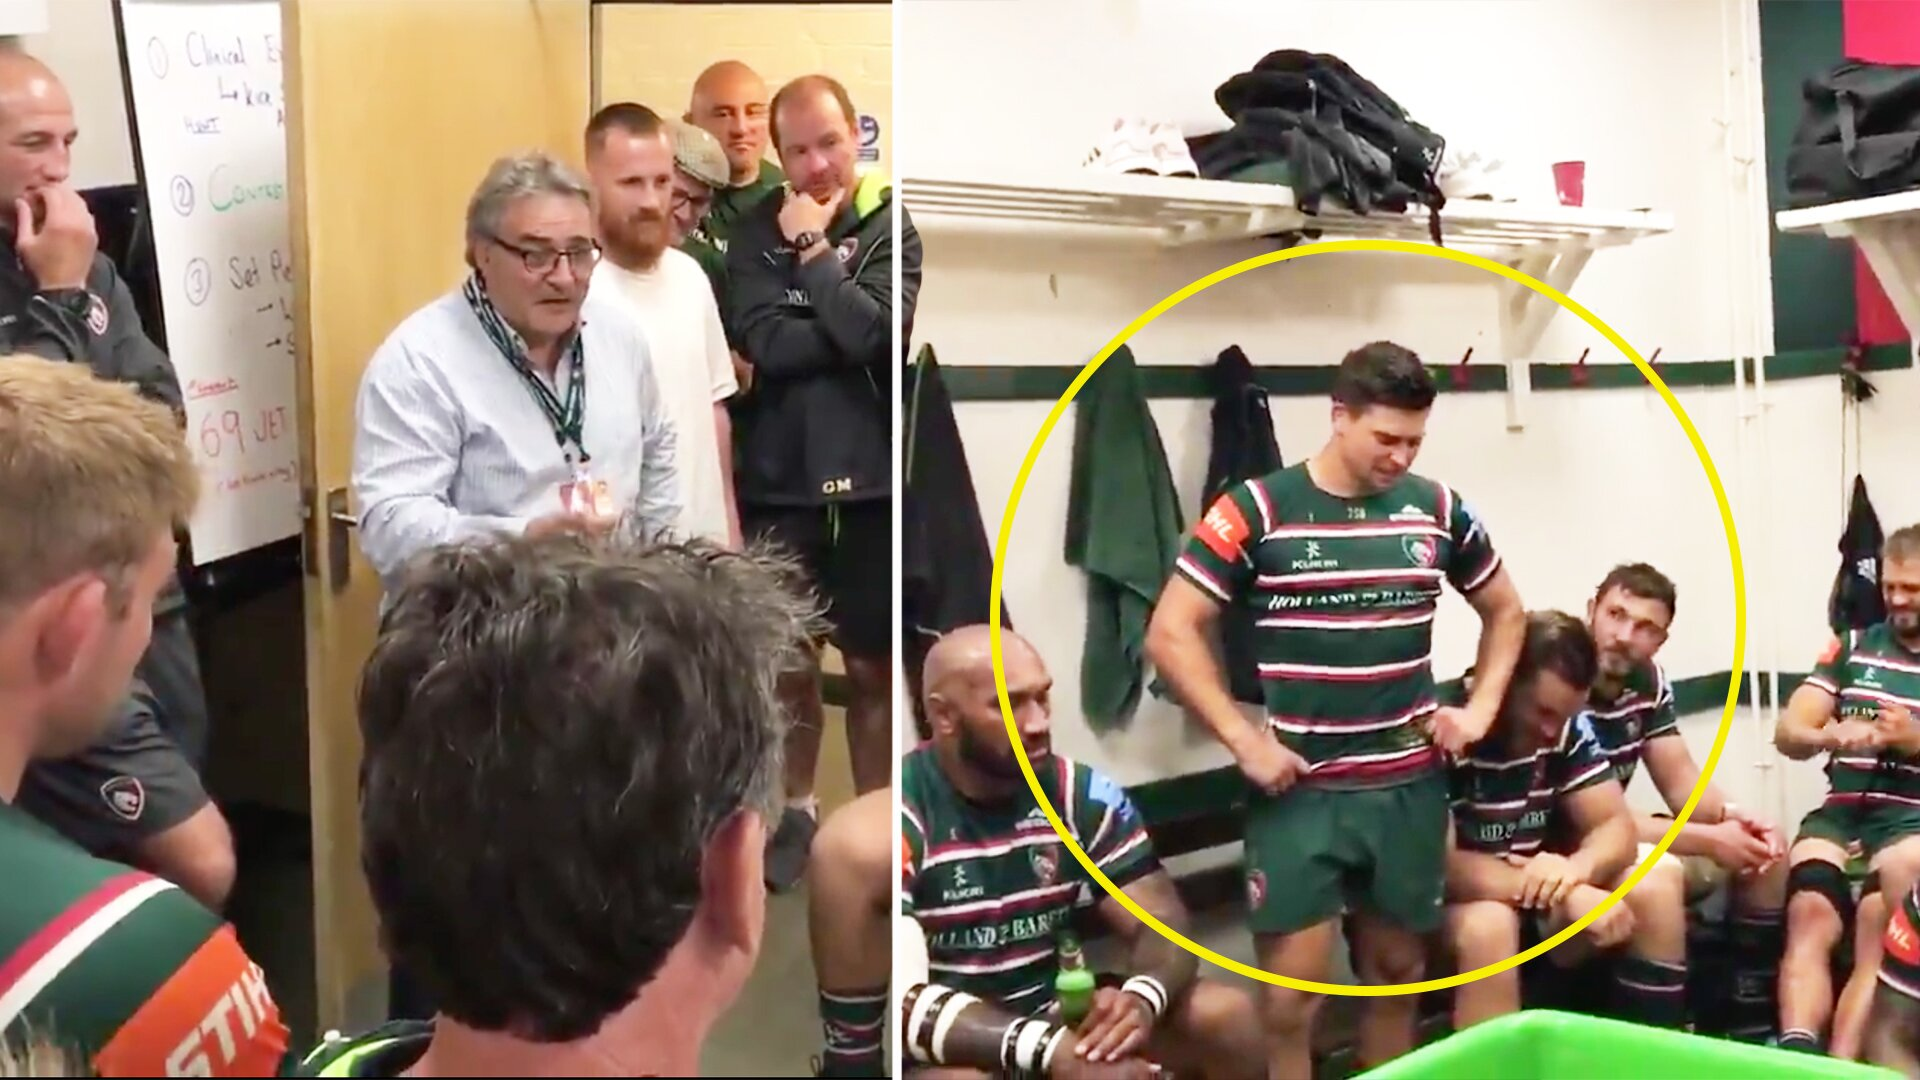 Ben Youngs breaks down in tears after his father enters the Leicester dressing room to give emotional speech to his son